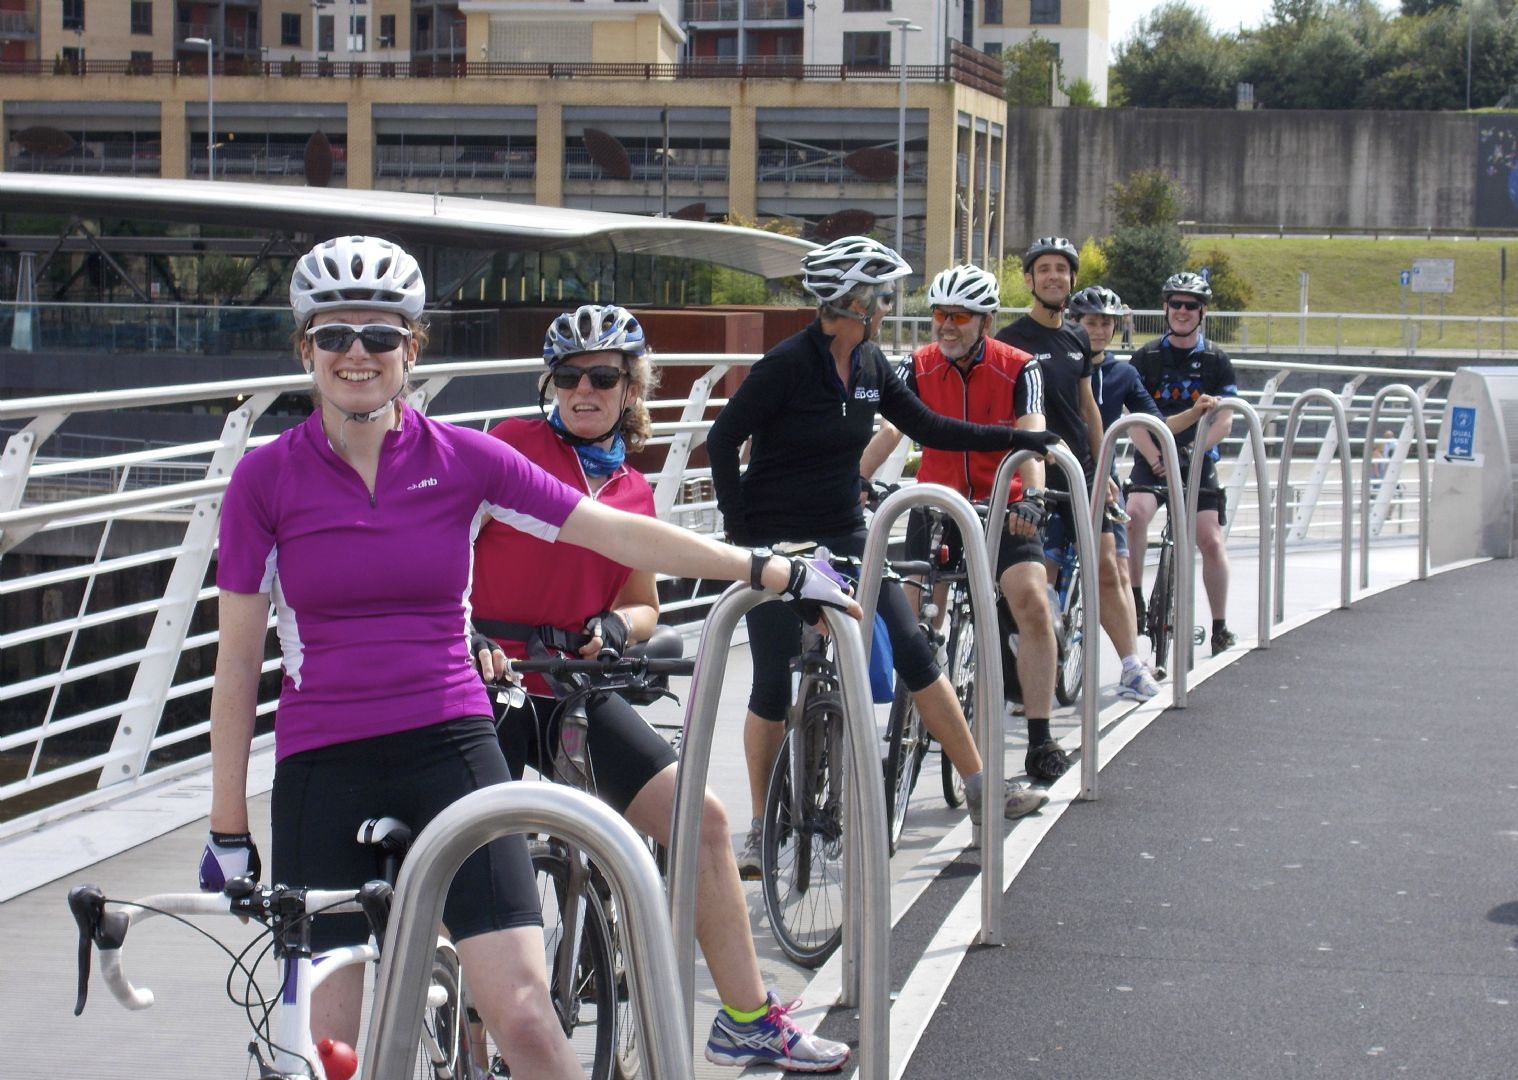 _Customer.103990.17974.jpg - UK - C2C - Coast to Coast - Supported Leisure Cycling Holiday - Leisure Cycling